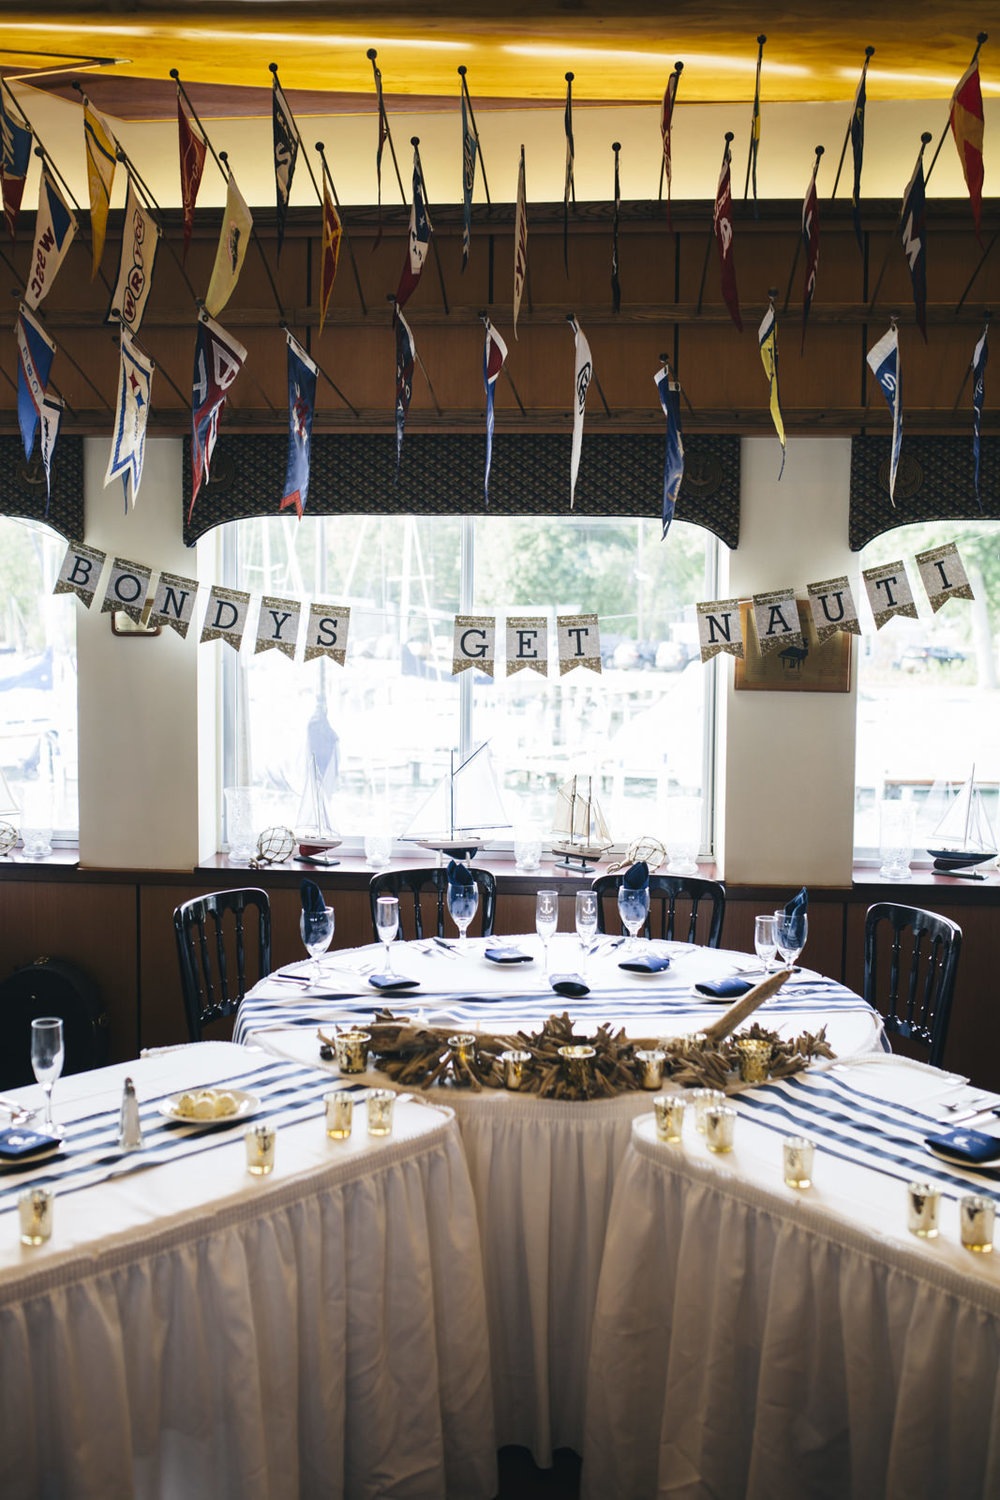 Nautical themed wedding decorations at Michigan wedding reception.